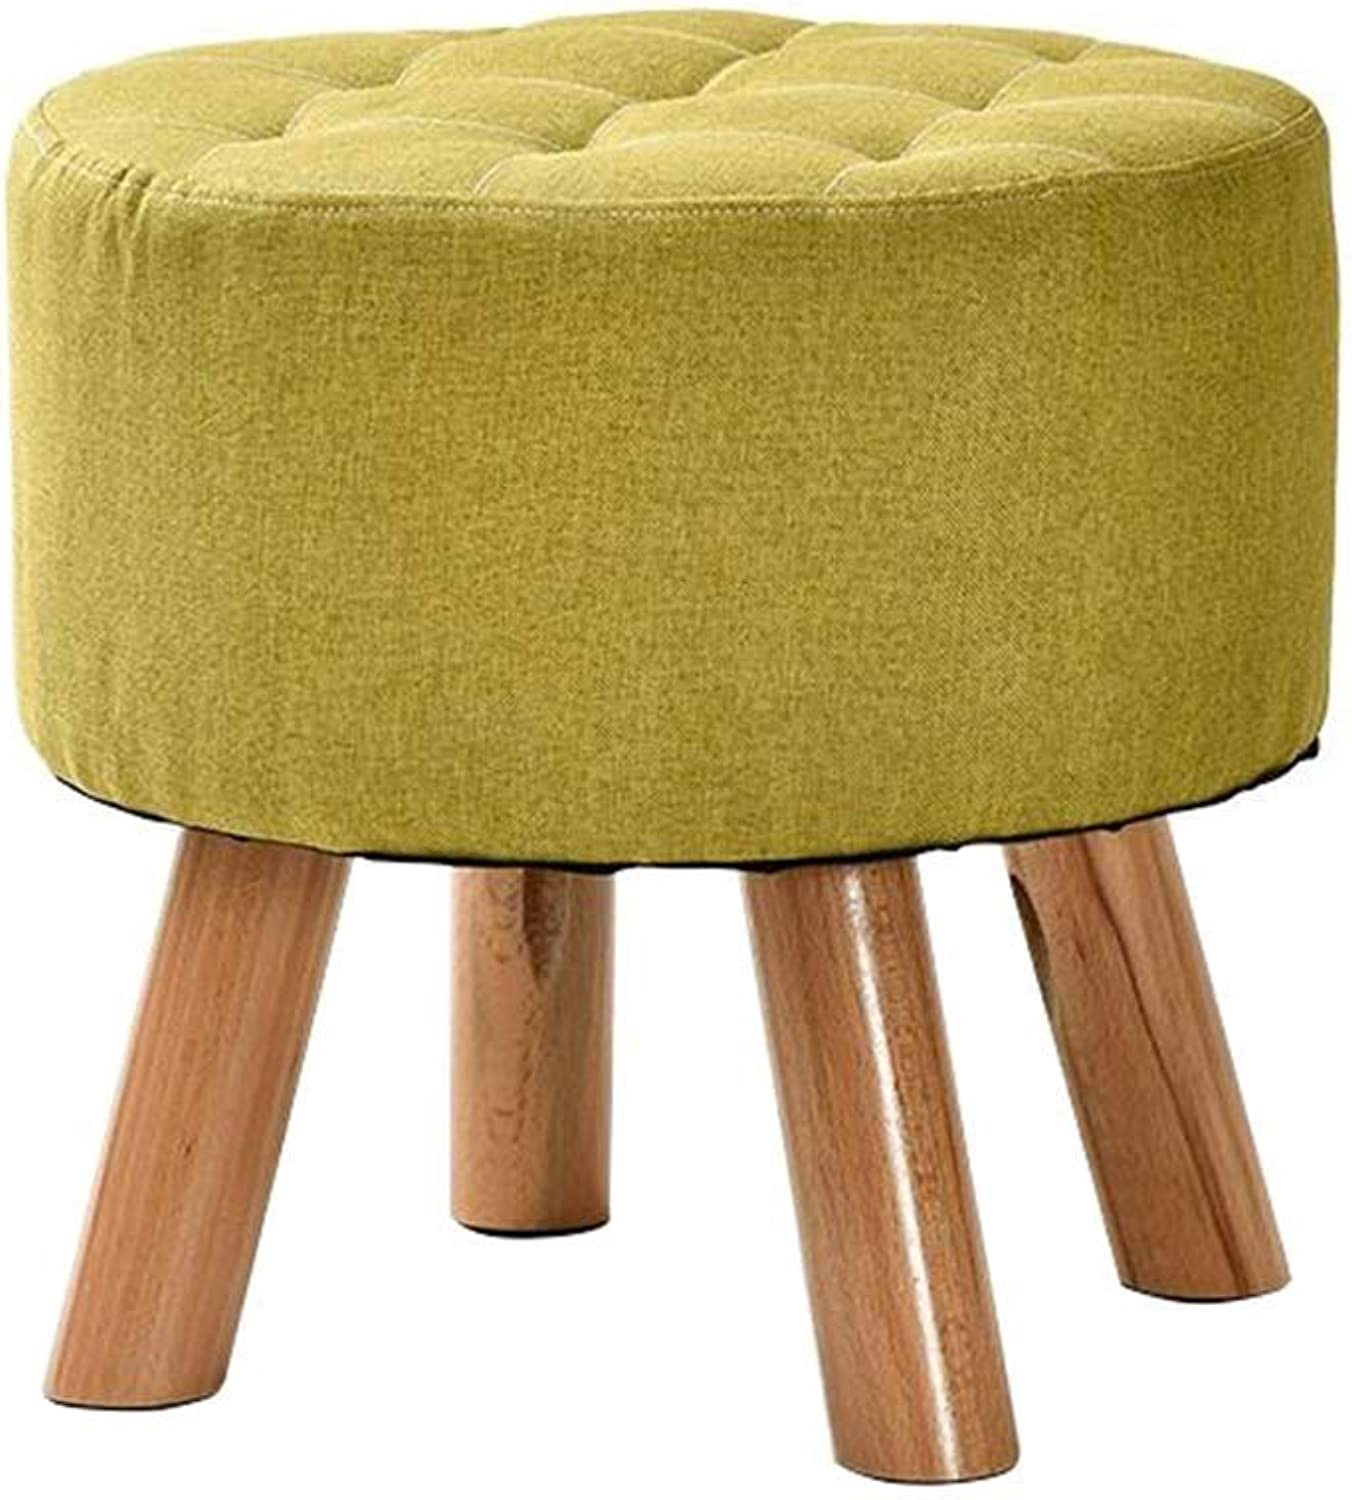 Round Padded Footstool Chair, Replacement shoes Bench Detachable Linen Cover and Solid Wood 4 Legs (color  4 colors) (color   Green)